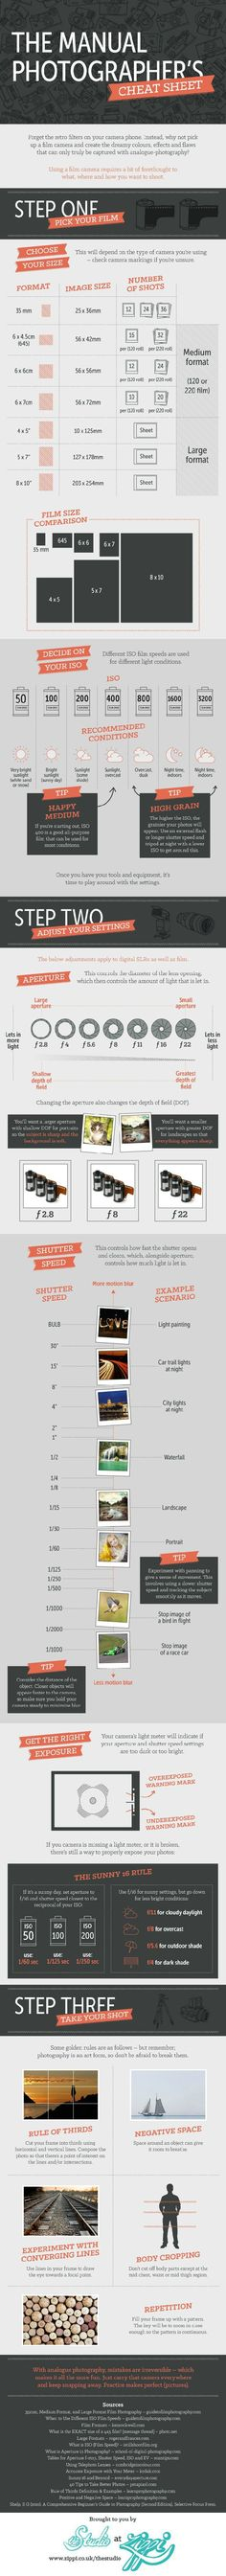 Cheat Sheet: Getting Control over Your Camera in Manual Mode